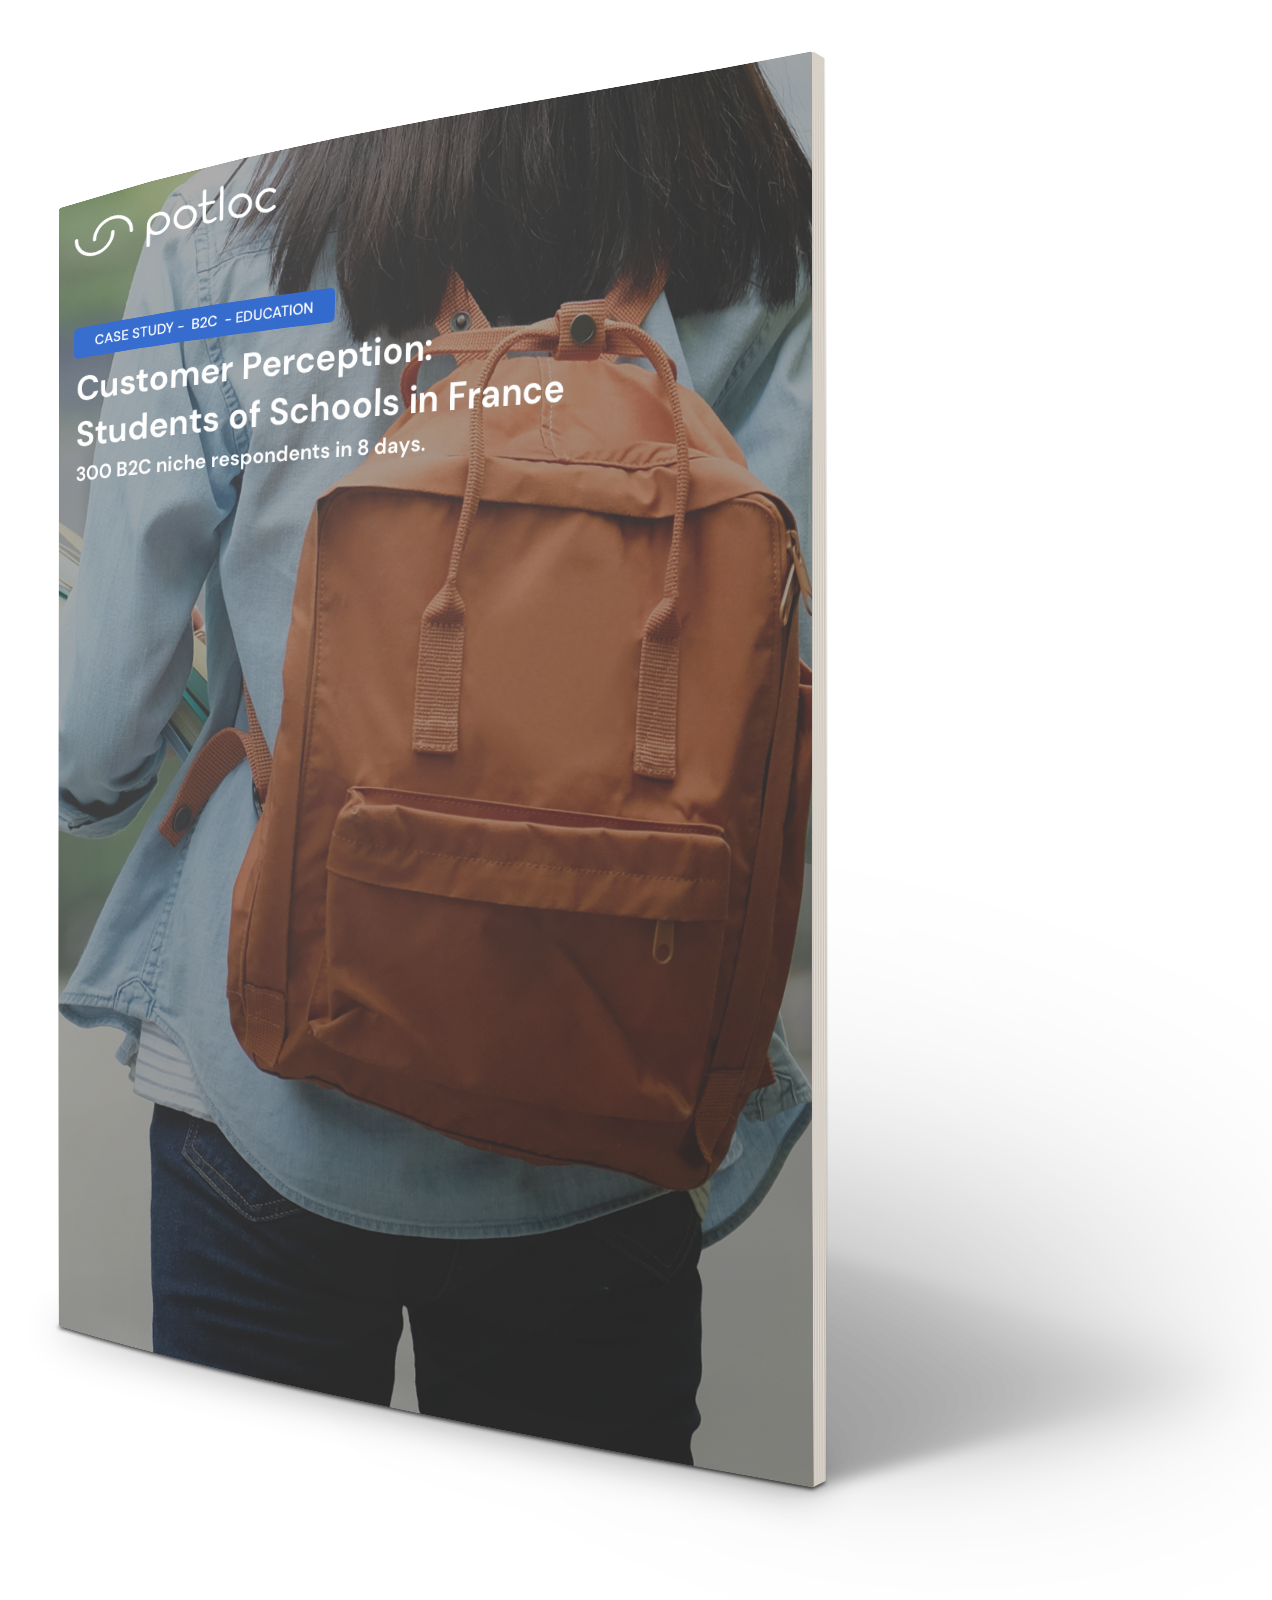 Cover of Case Study on B2C Research on Customer Perception | Education | Potloc Consulting